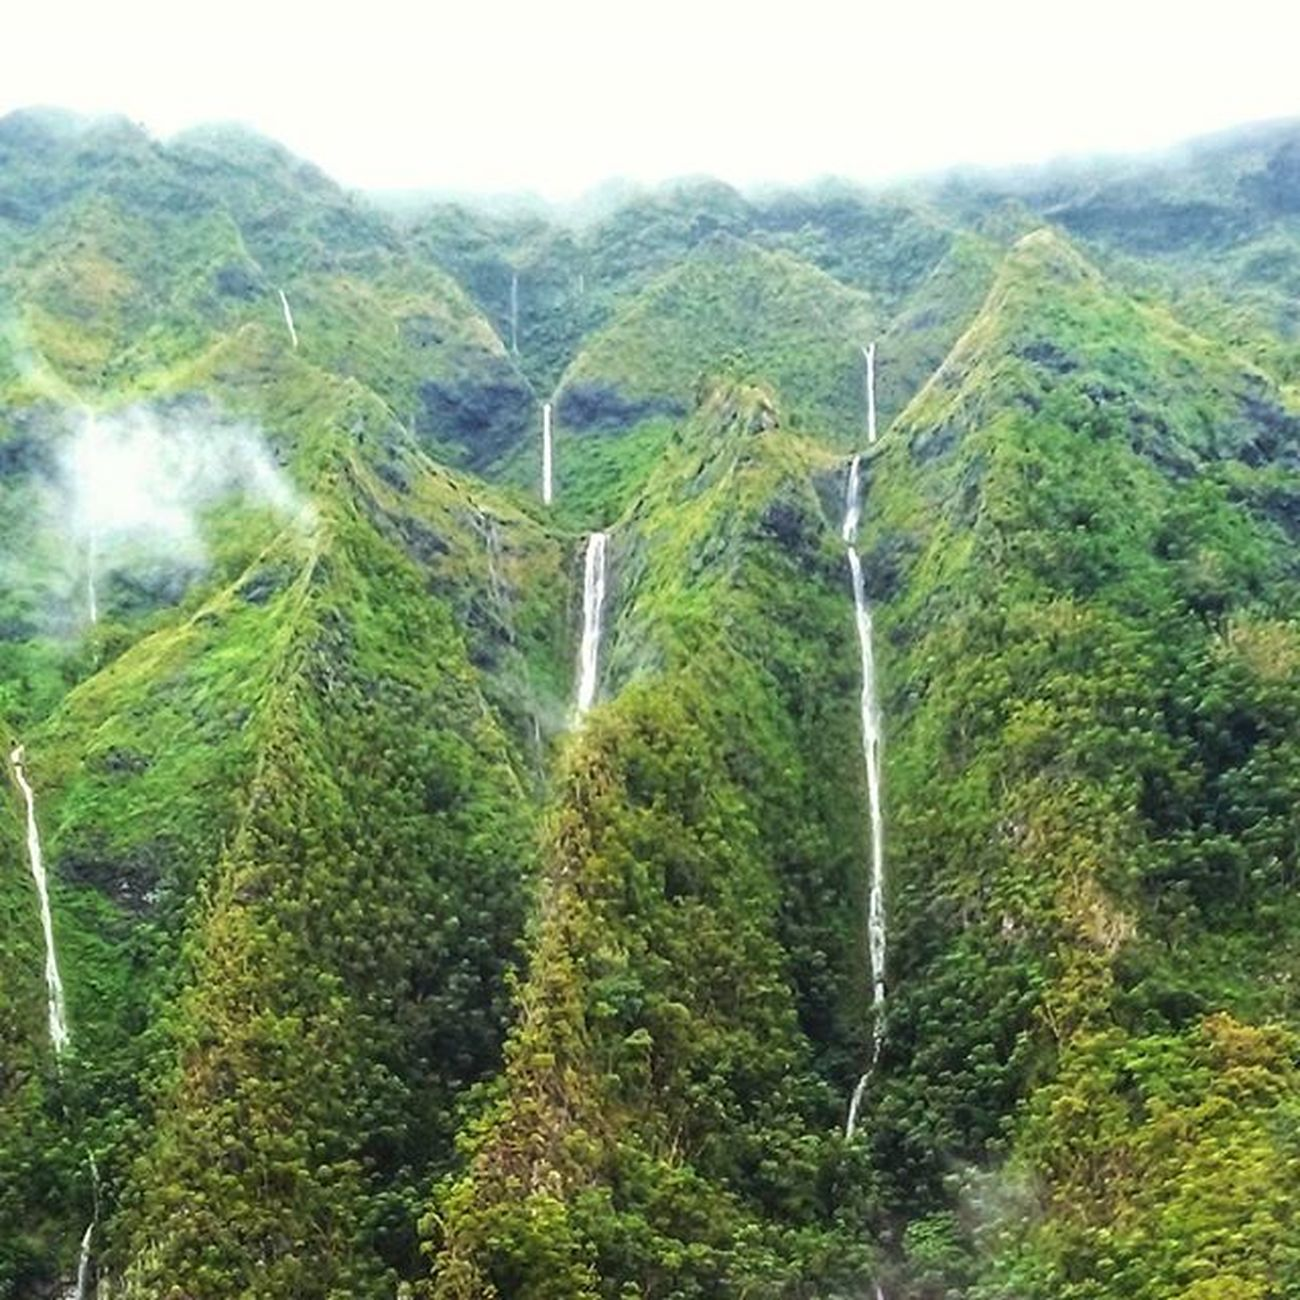 Rain rain made my day... Koolaumountains Waterfalls Luckywelivehi Venturehawaii Epichi Greyclouds  Mountains Rain =waterfalls Latergram Rollingshot